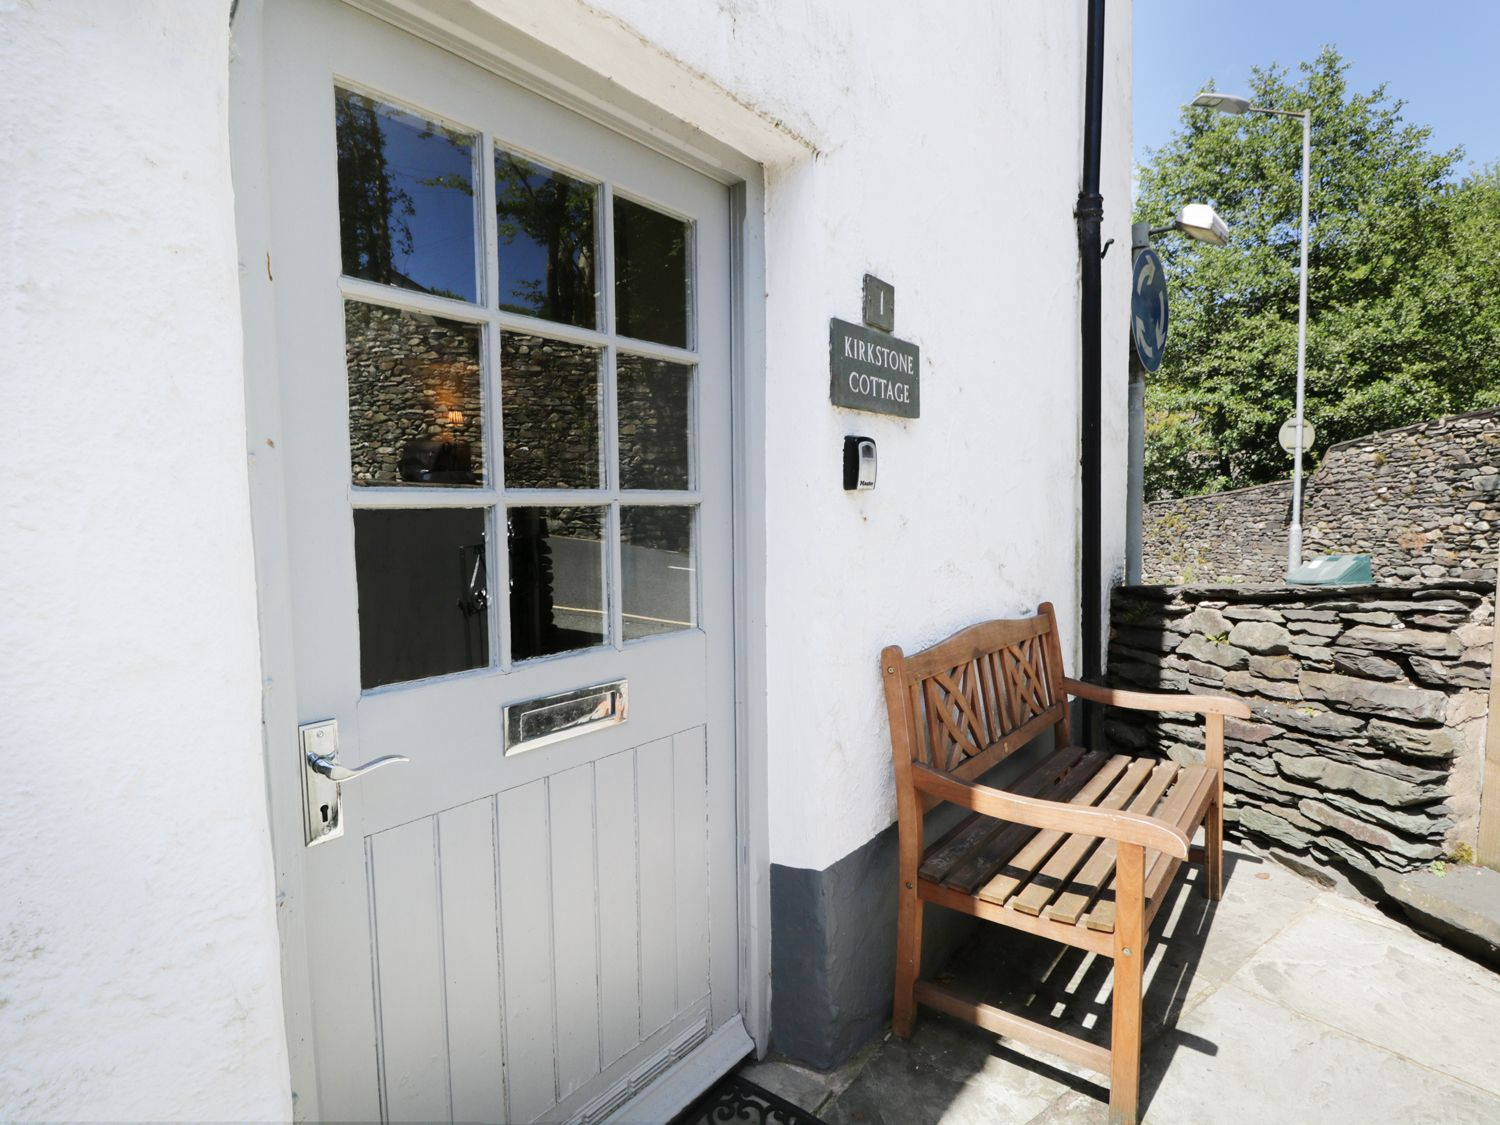 Kirkstone Cottage - Lake District - 968995 - photo 1